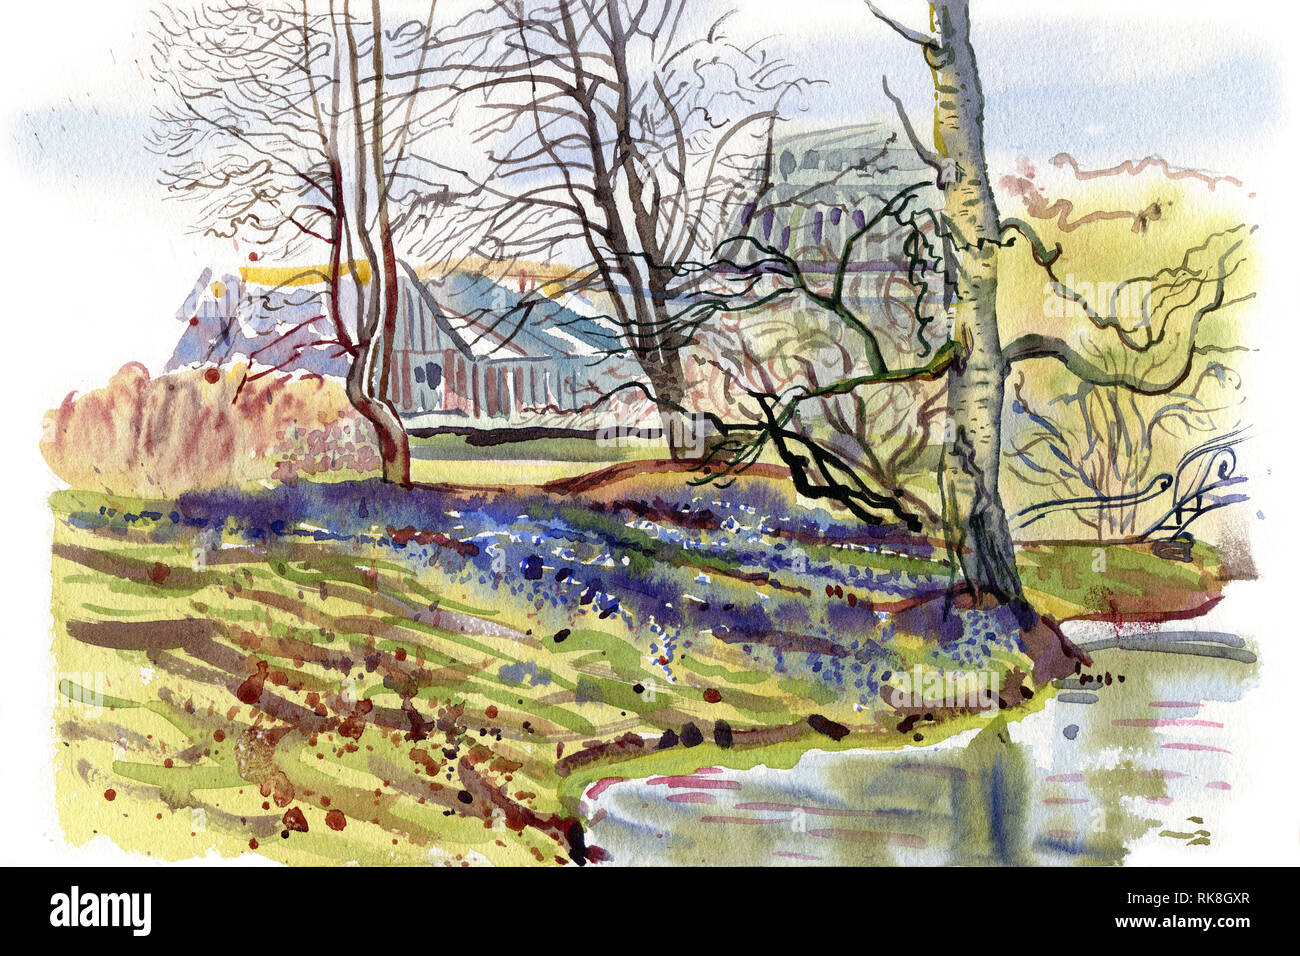 Spring Garden Landscape Watercolor Sketch Hand Drawn Painting